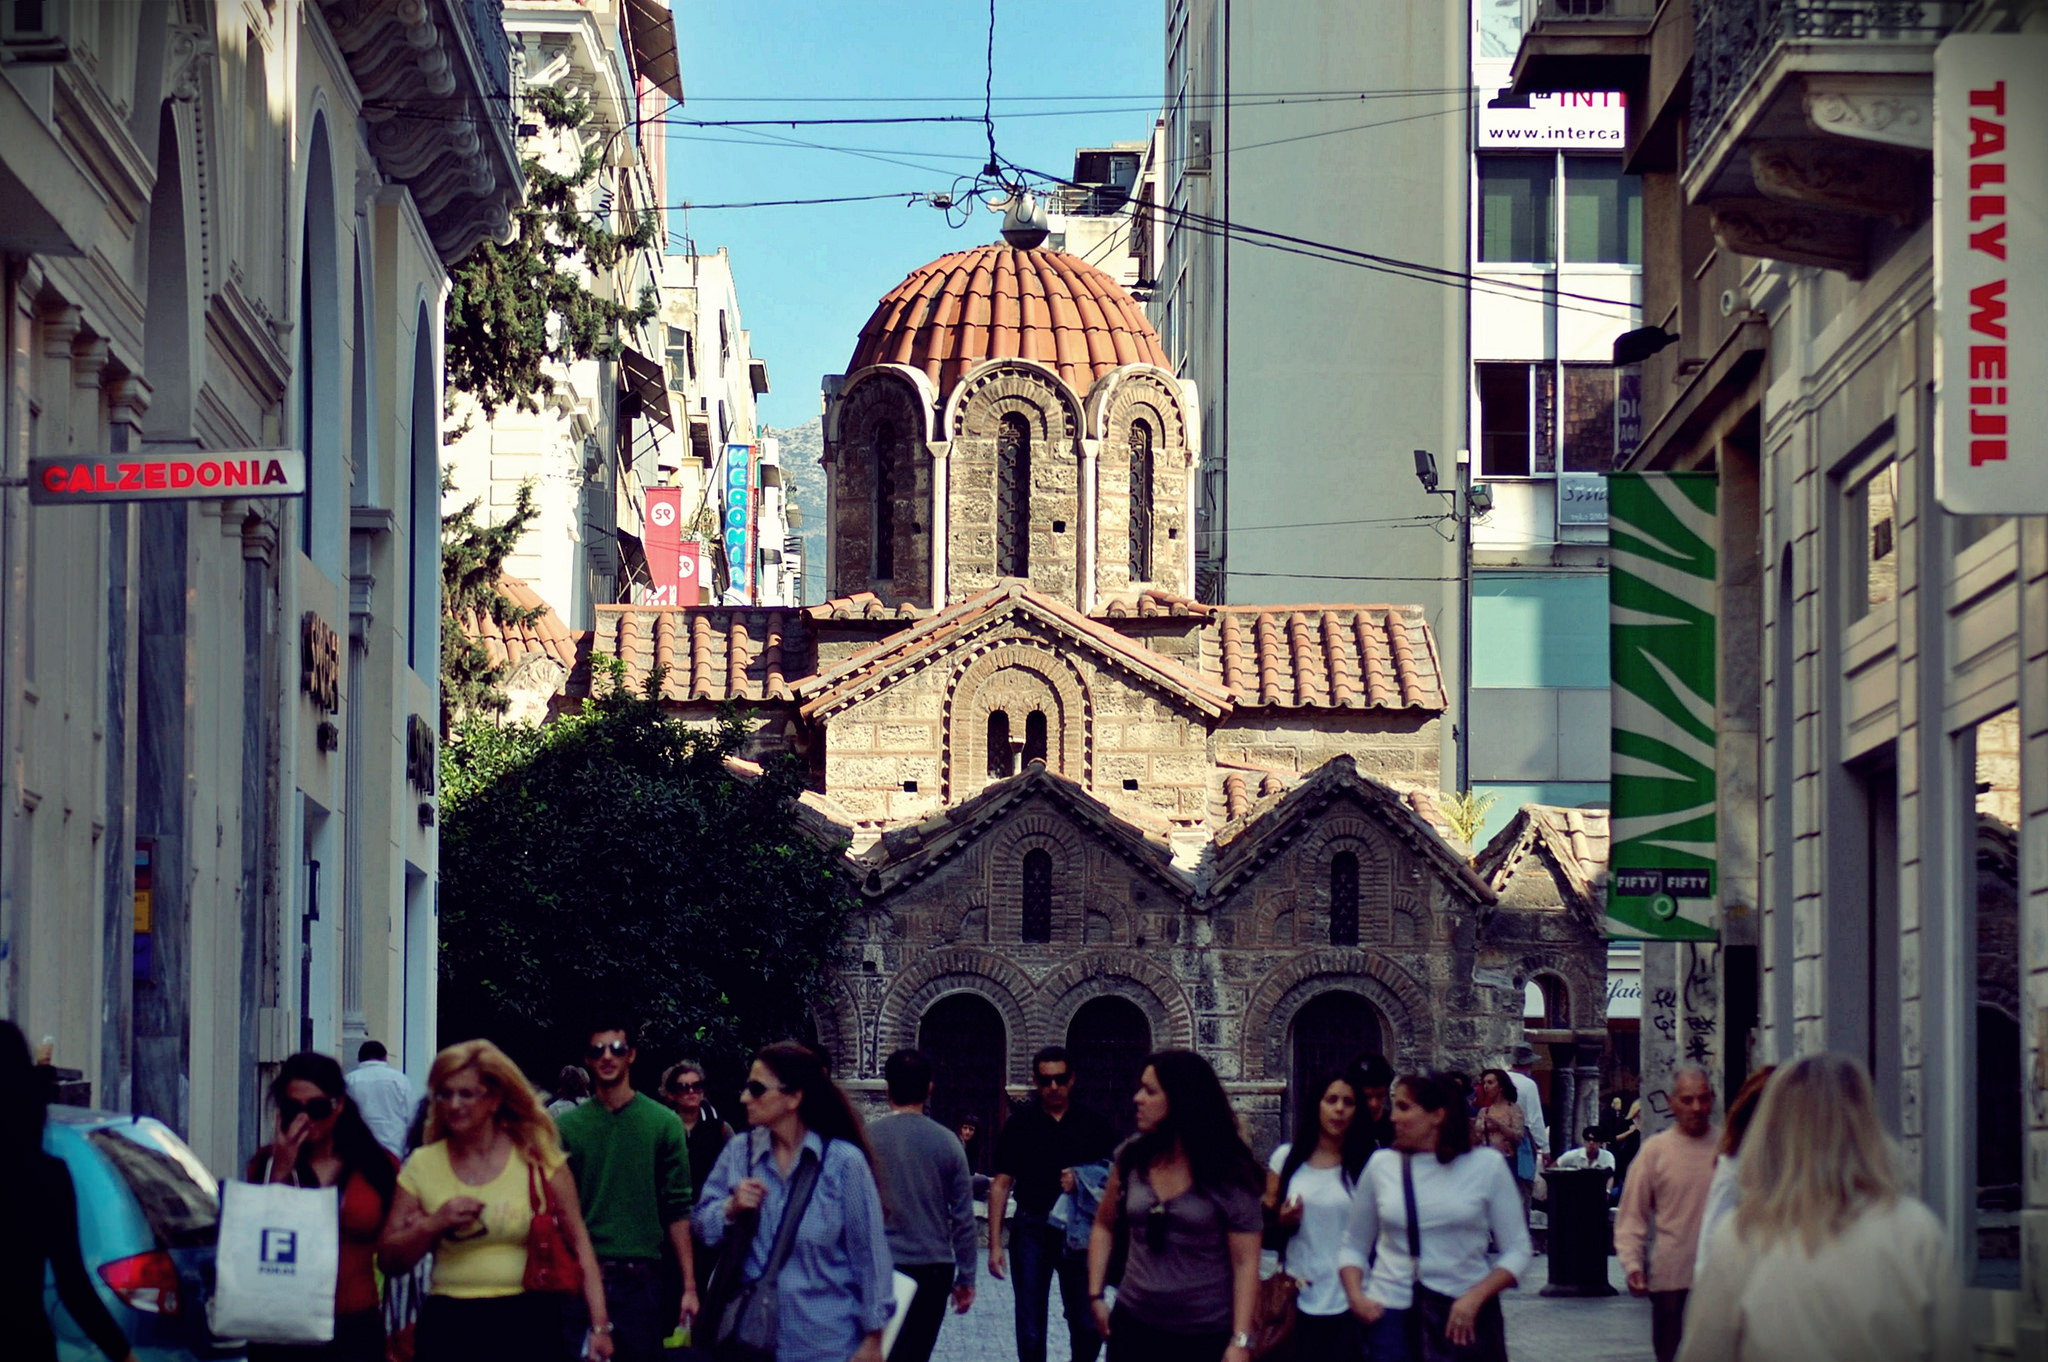 People shop on a busy street with Athen's 11th-century Byzantine Church of Panaghia Kapnikarea behind them. (Photo by Ananabanana/Flickr User)